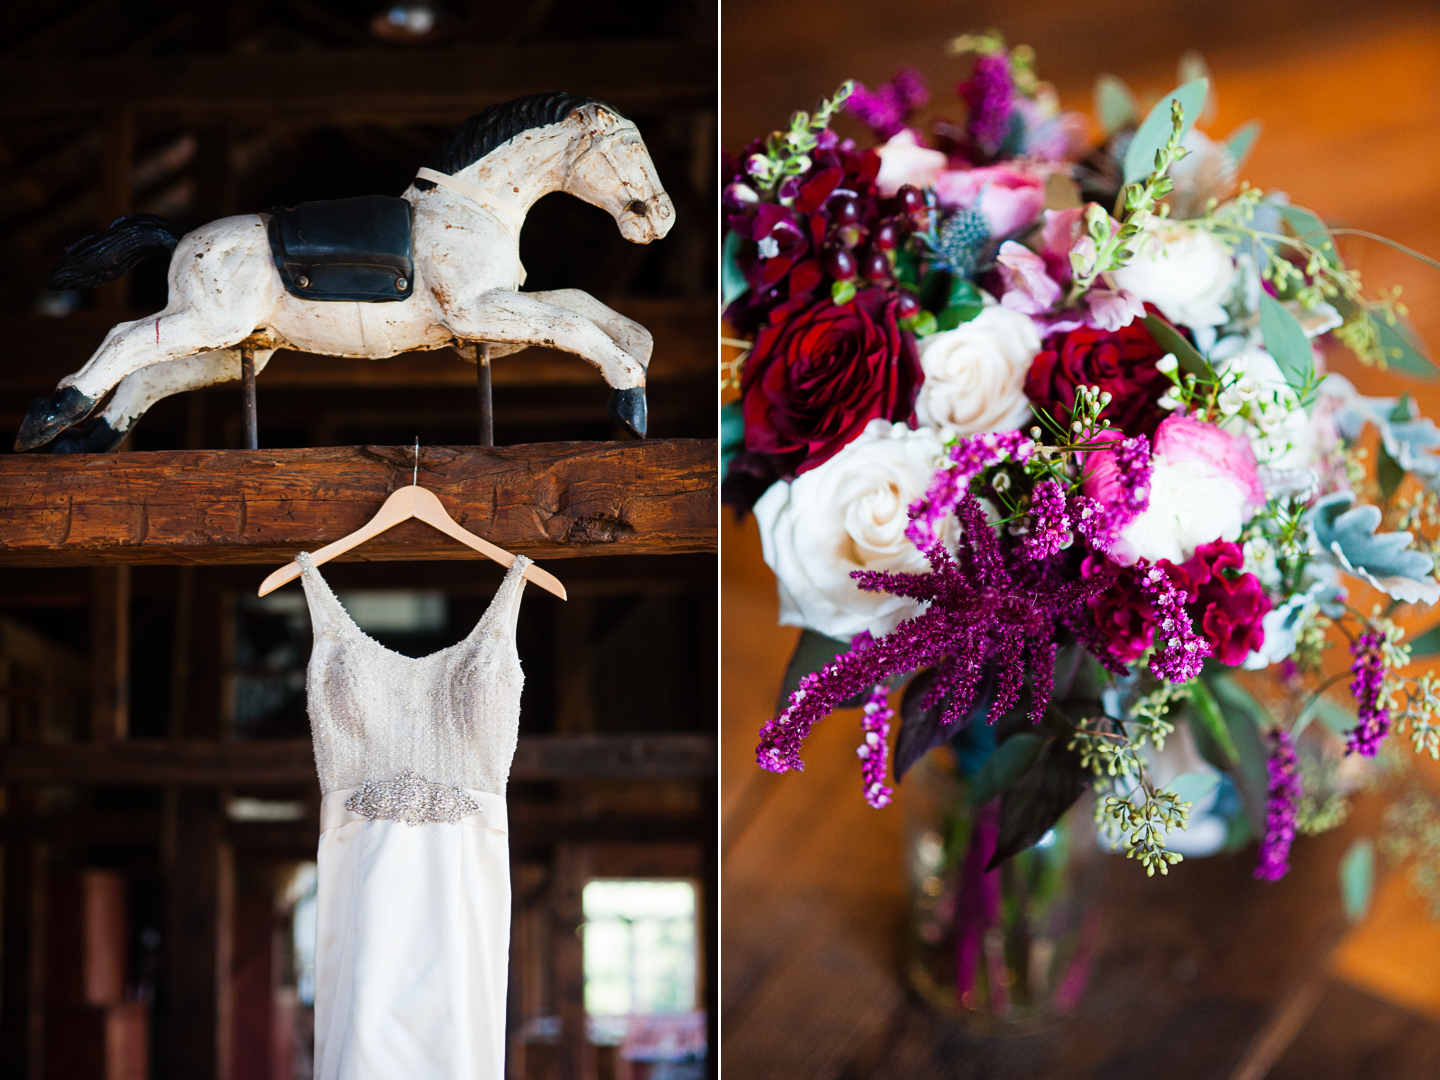 lace wedding gown hangs in dark wood barn next to gorgeous pink bouquet